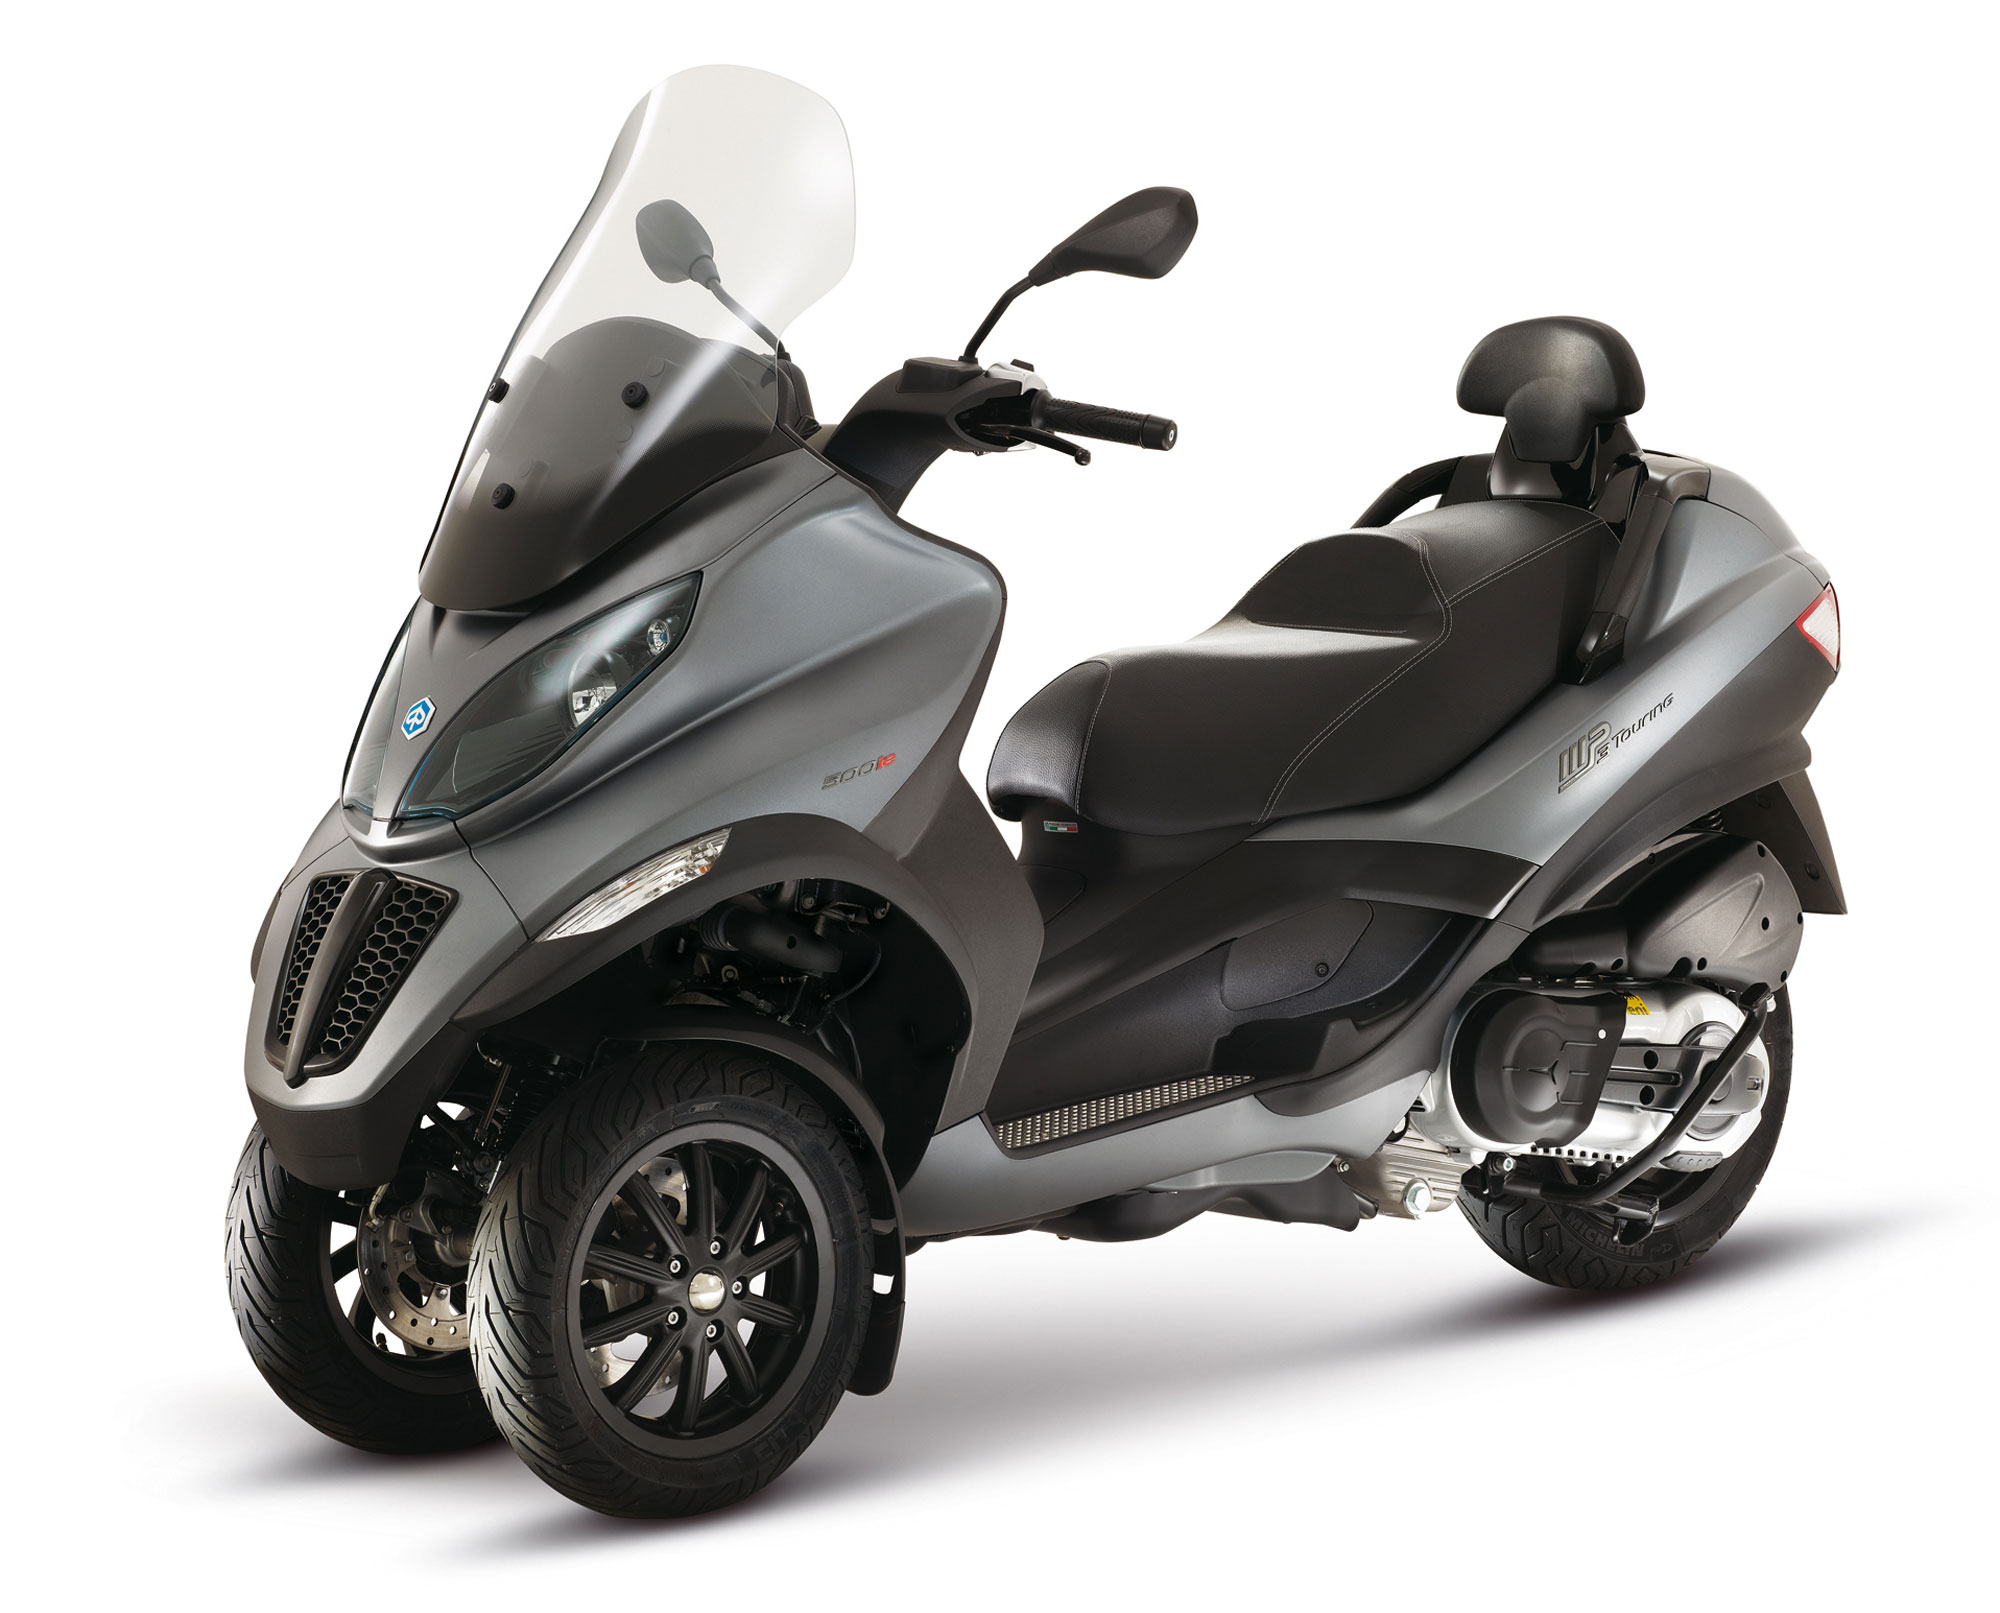 Piaggio MP3 500 2008 images #120142